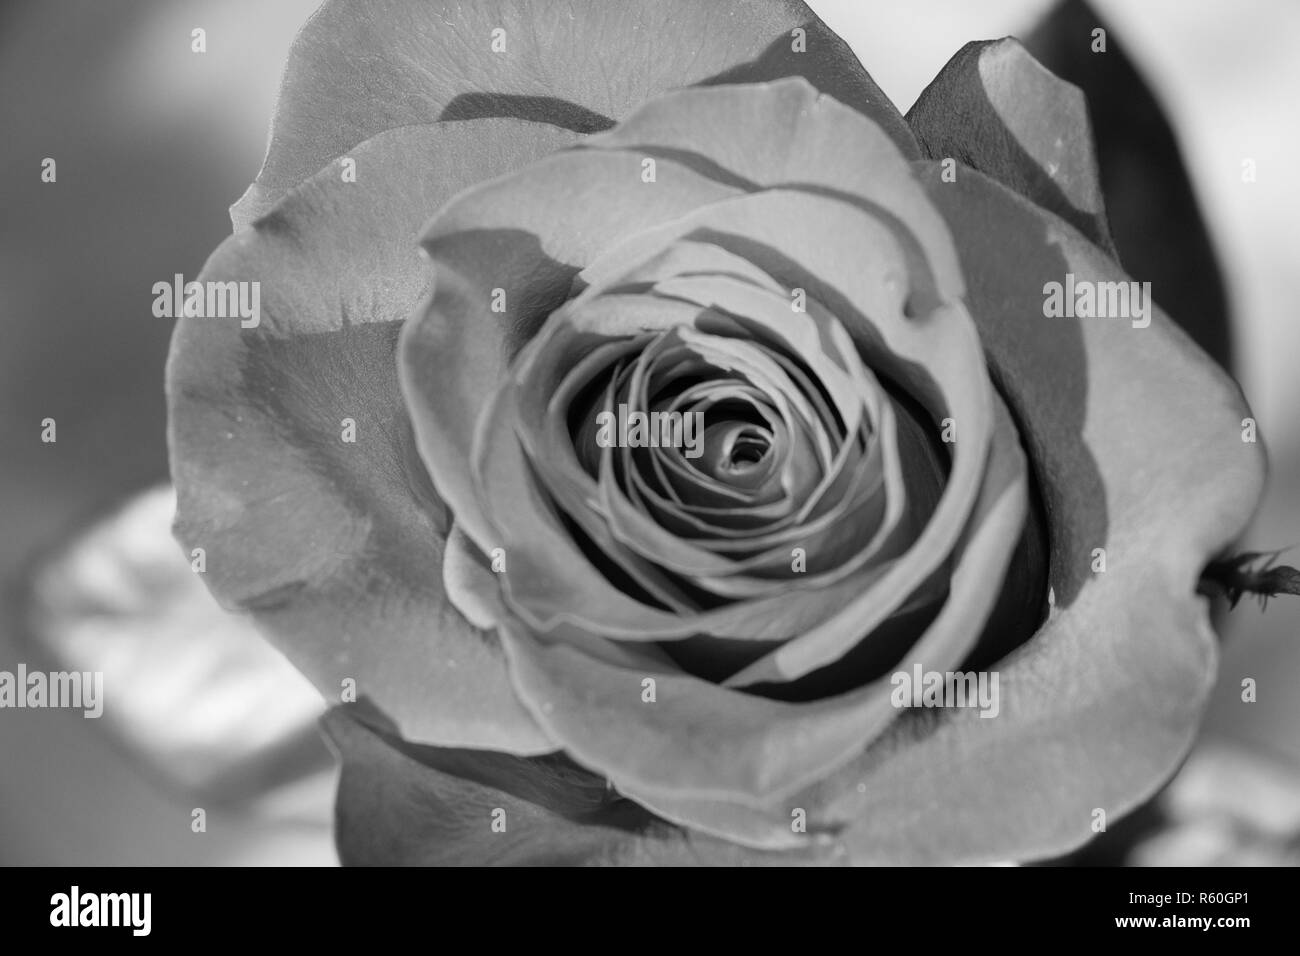 Gay black rosebud